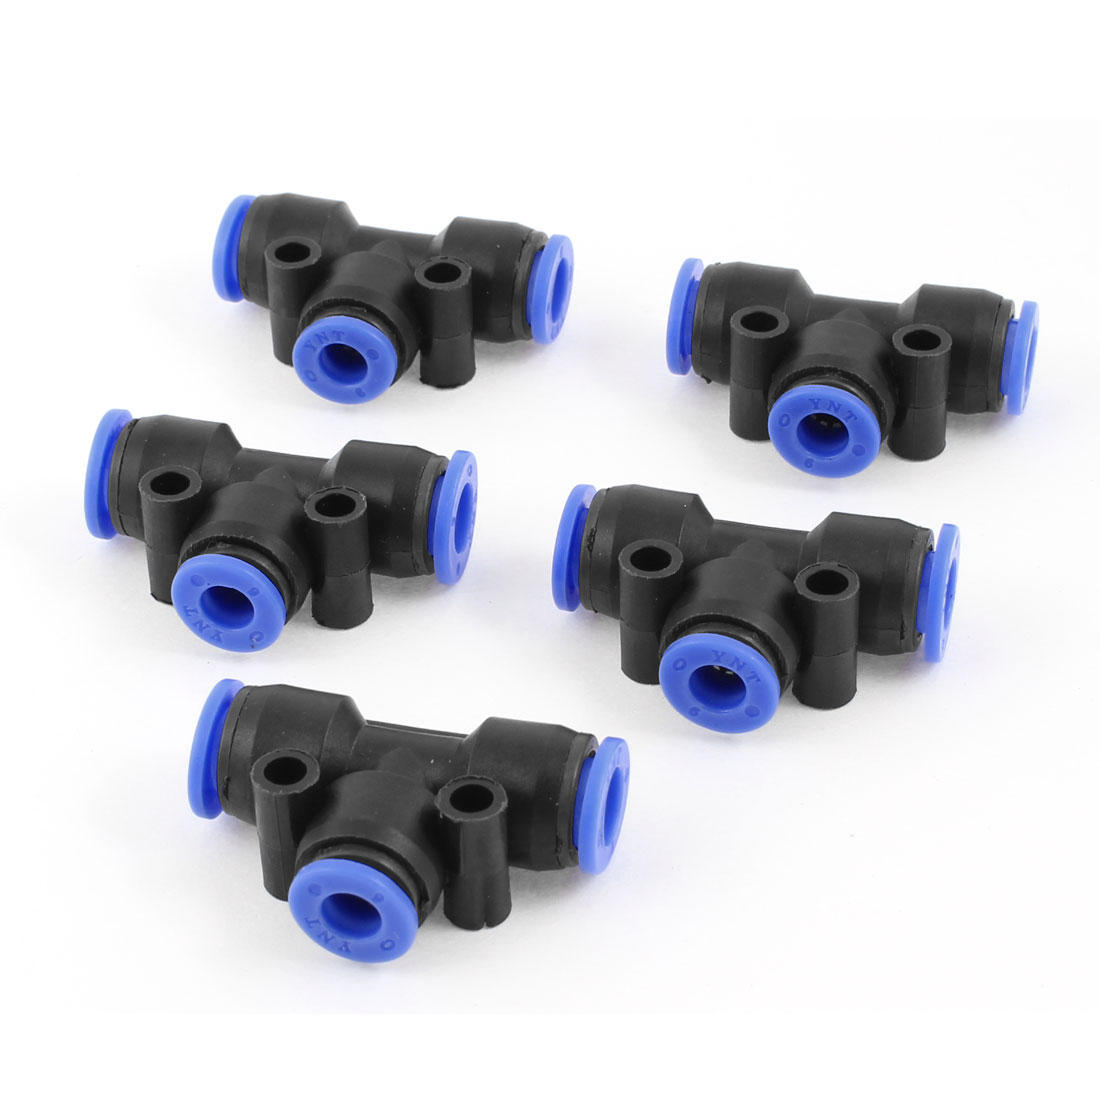 5 Pcs 8mm to 8mm One Touch Ends Piping Push In Quick Fittings T Connectors